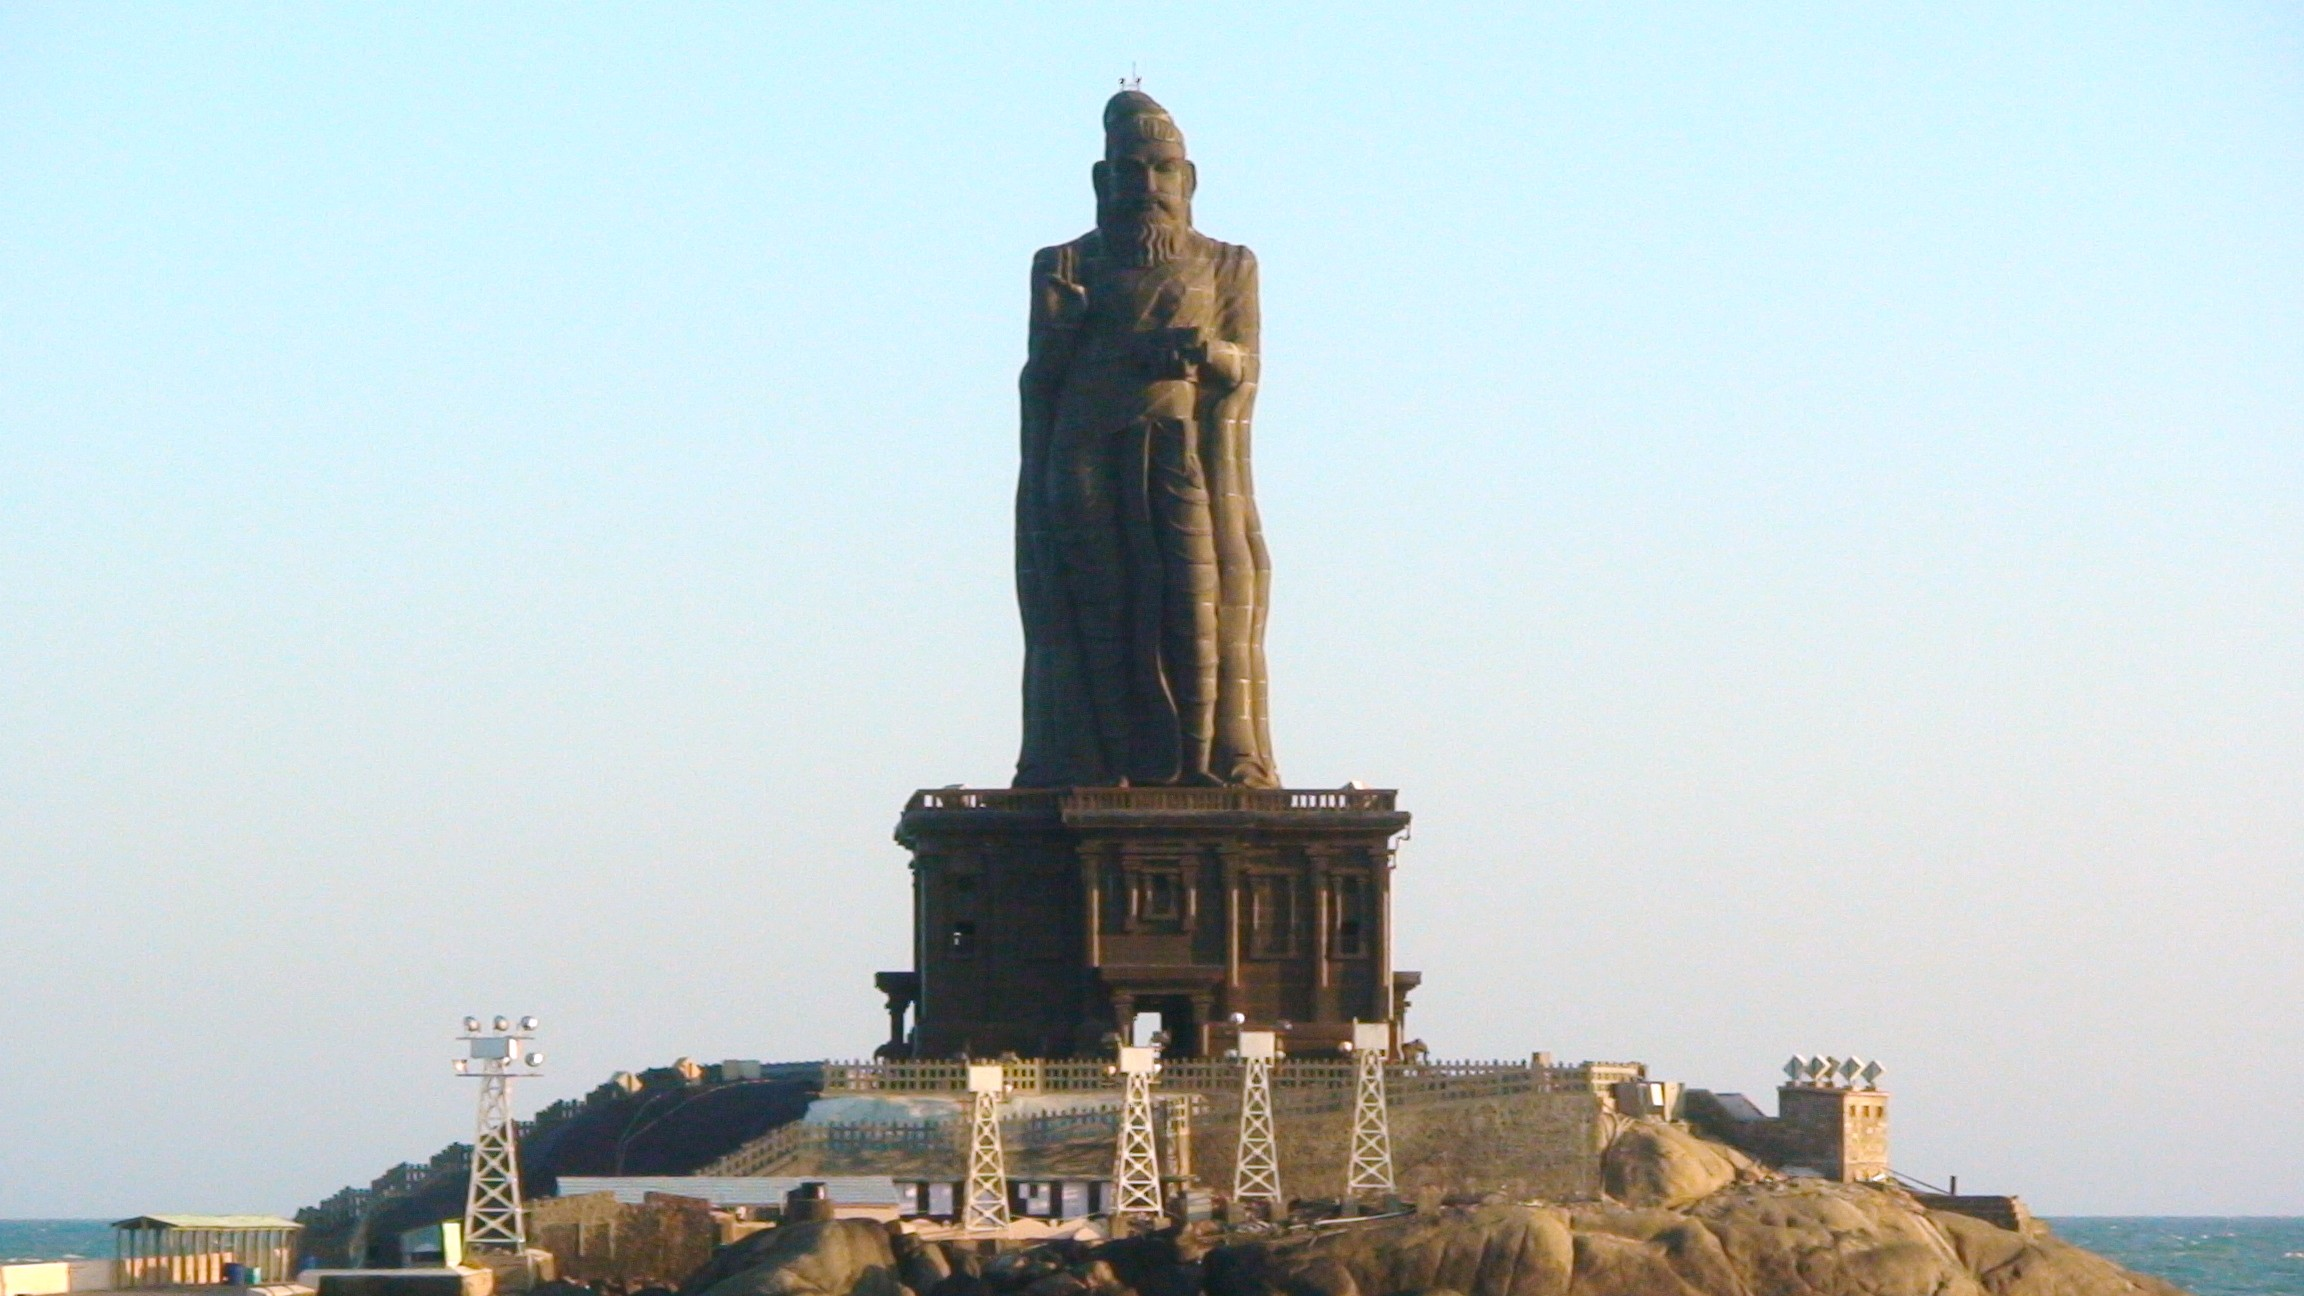 flirting the excellence of rain on translating tirukkural the colossal statue of tiruvalluvar built on a small islet at the meeting of the n ocean bay of bengal and arabian sea just offshore from the town